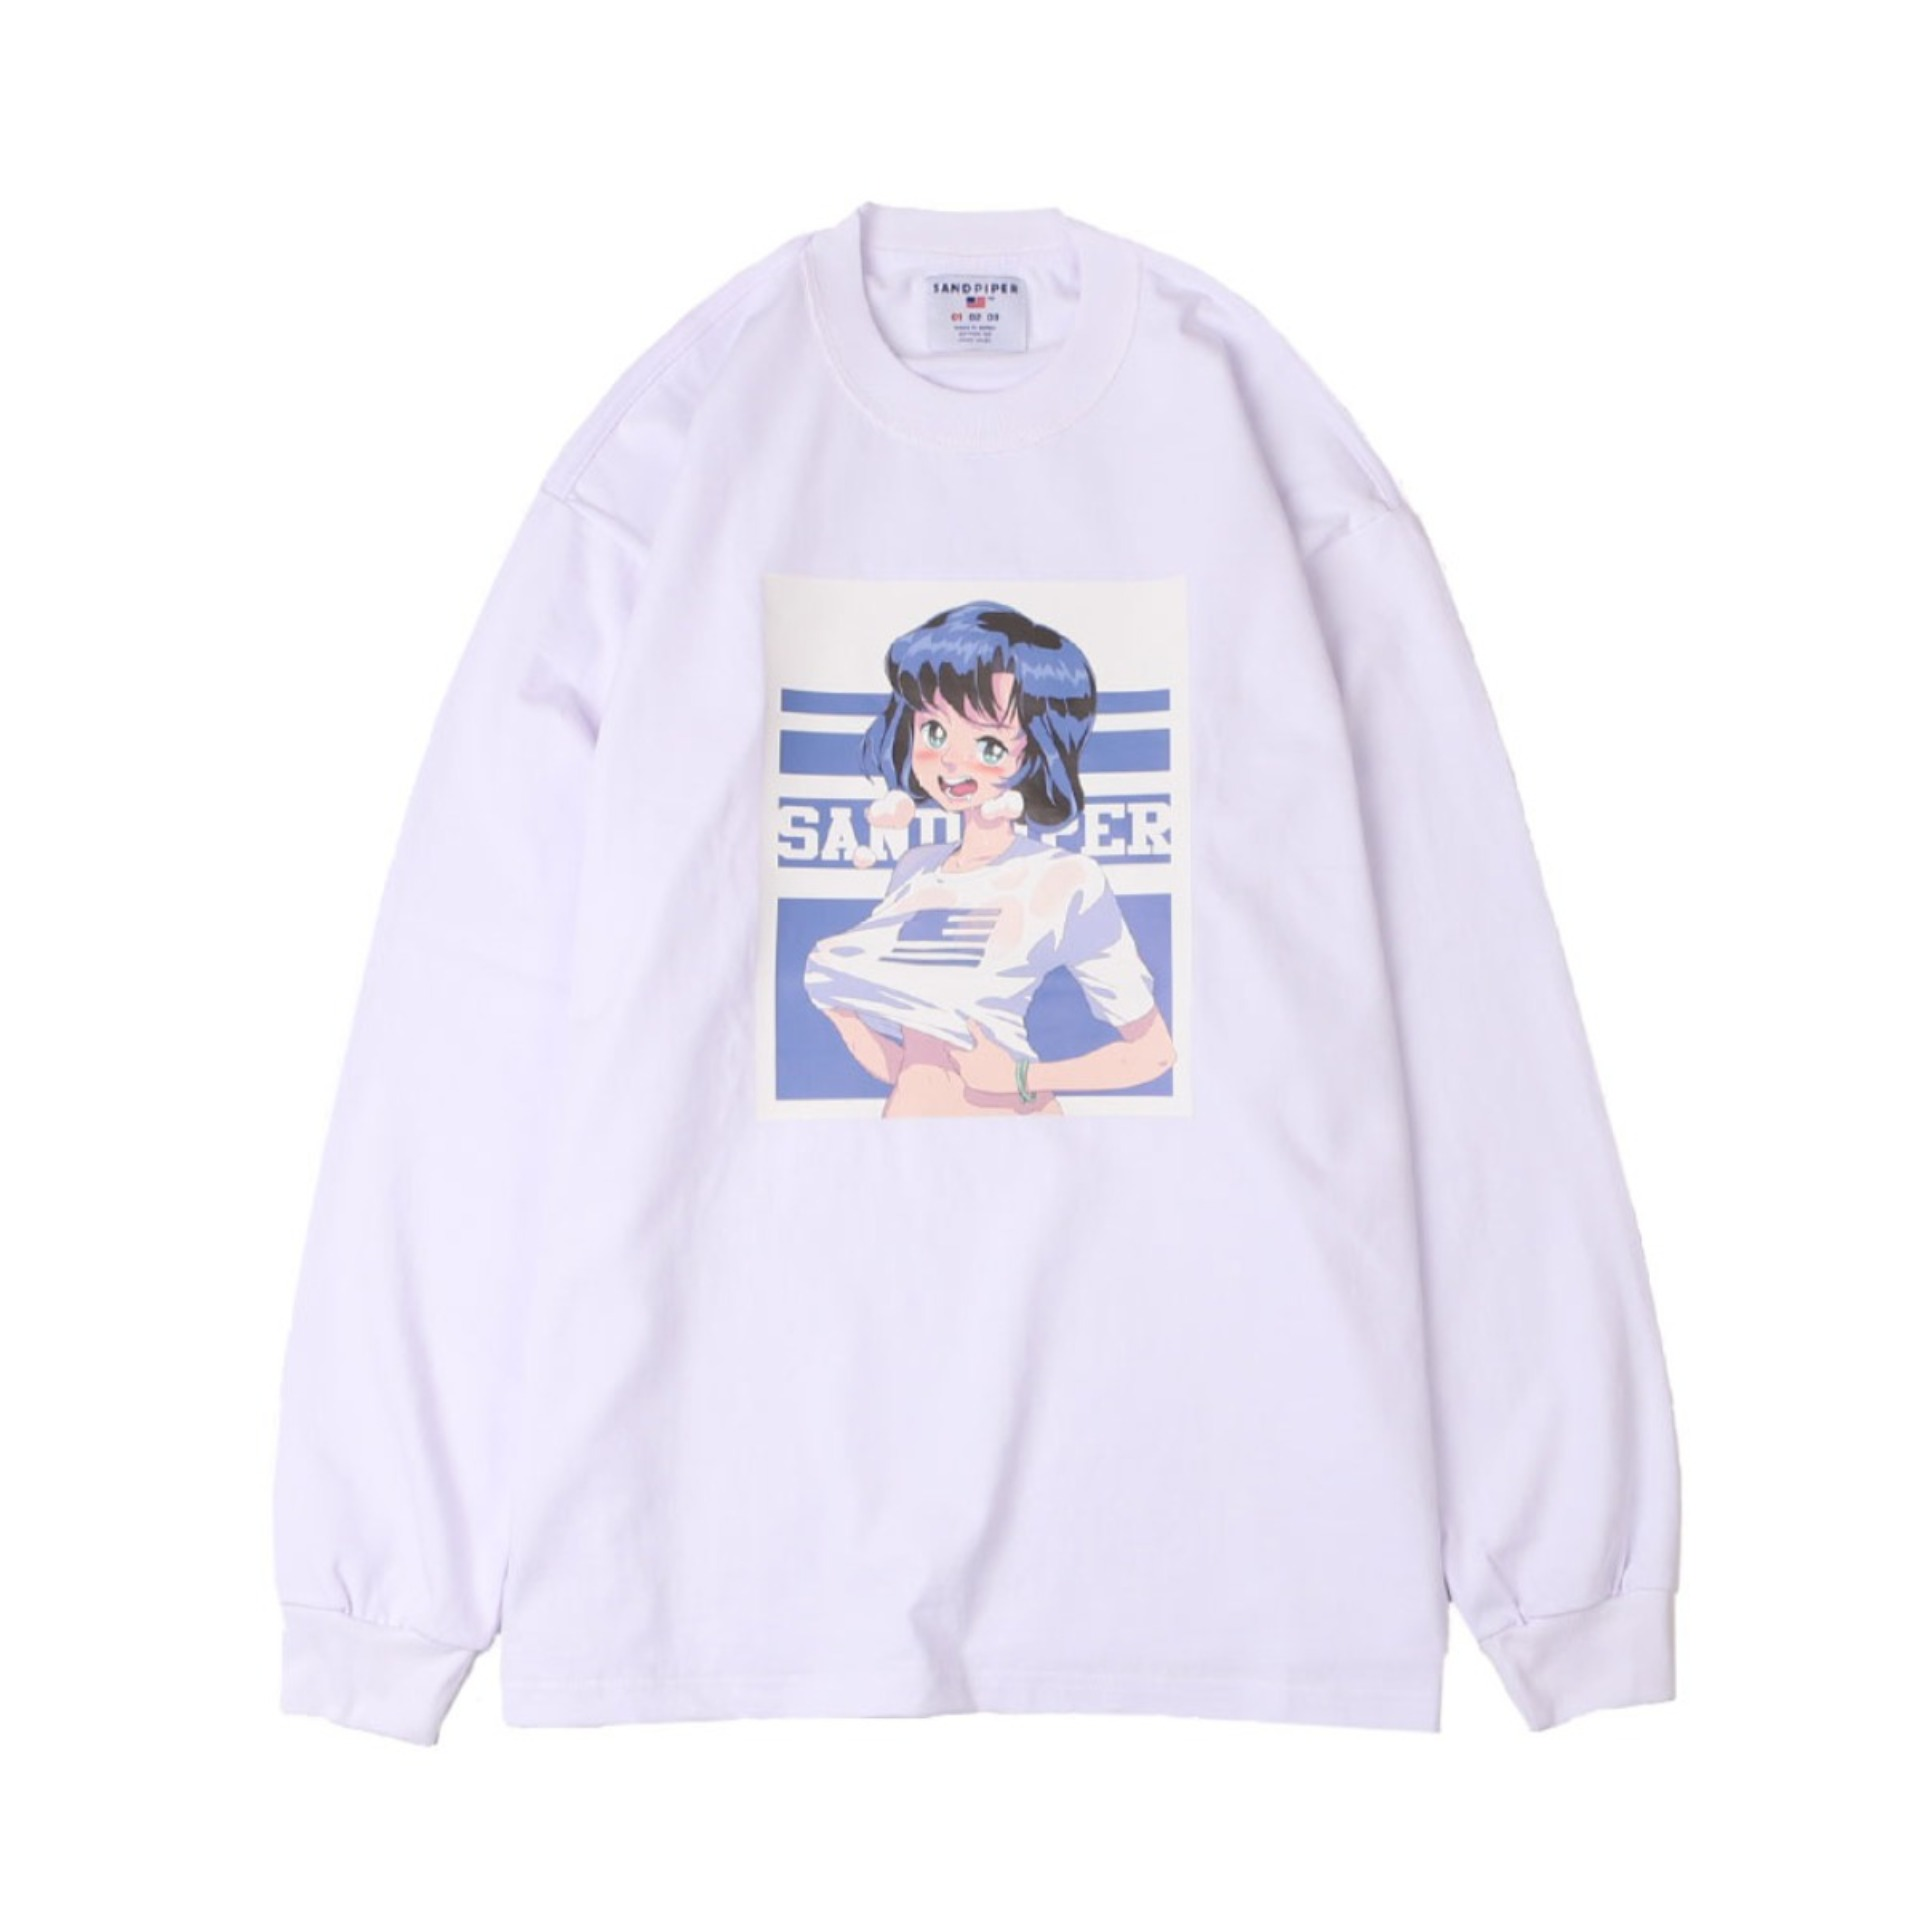 SP ANIME T SHIRTS (White)